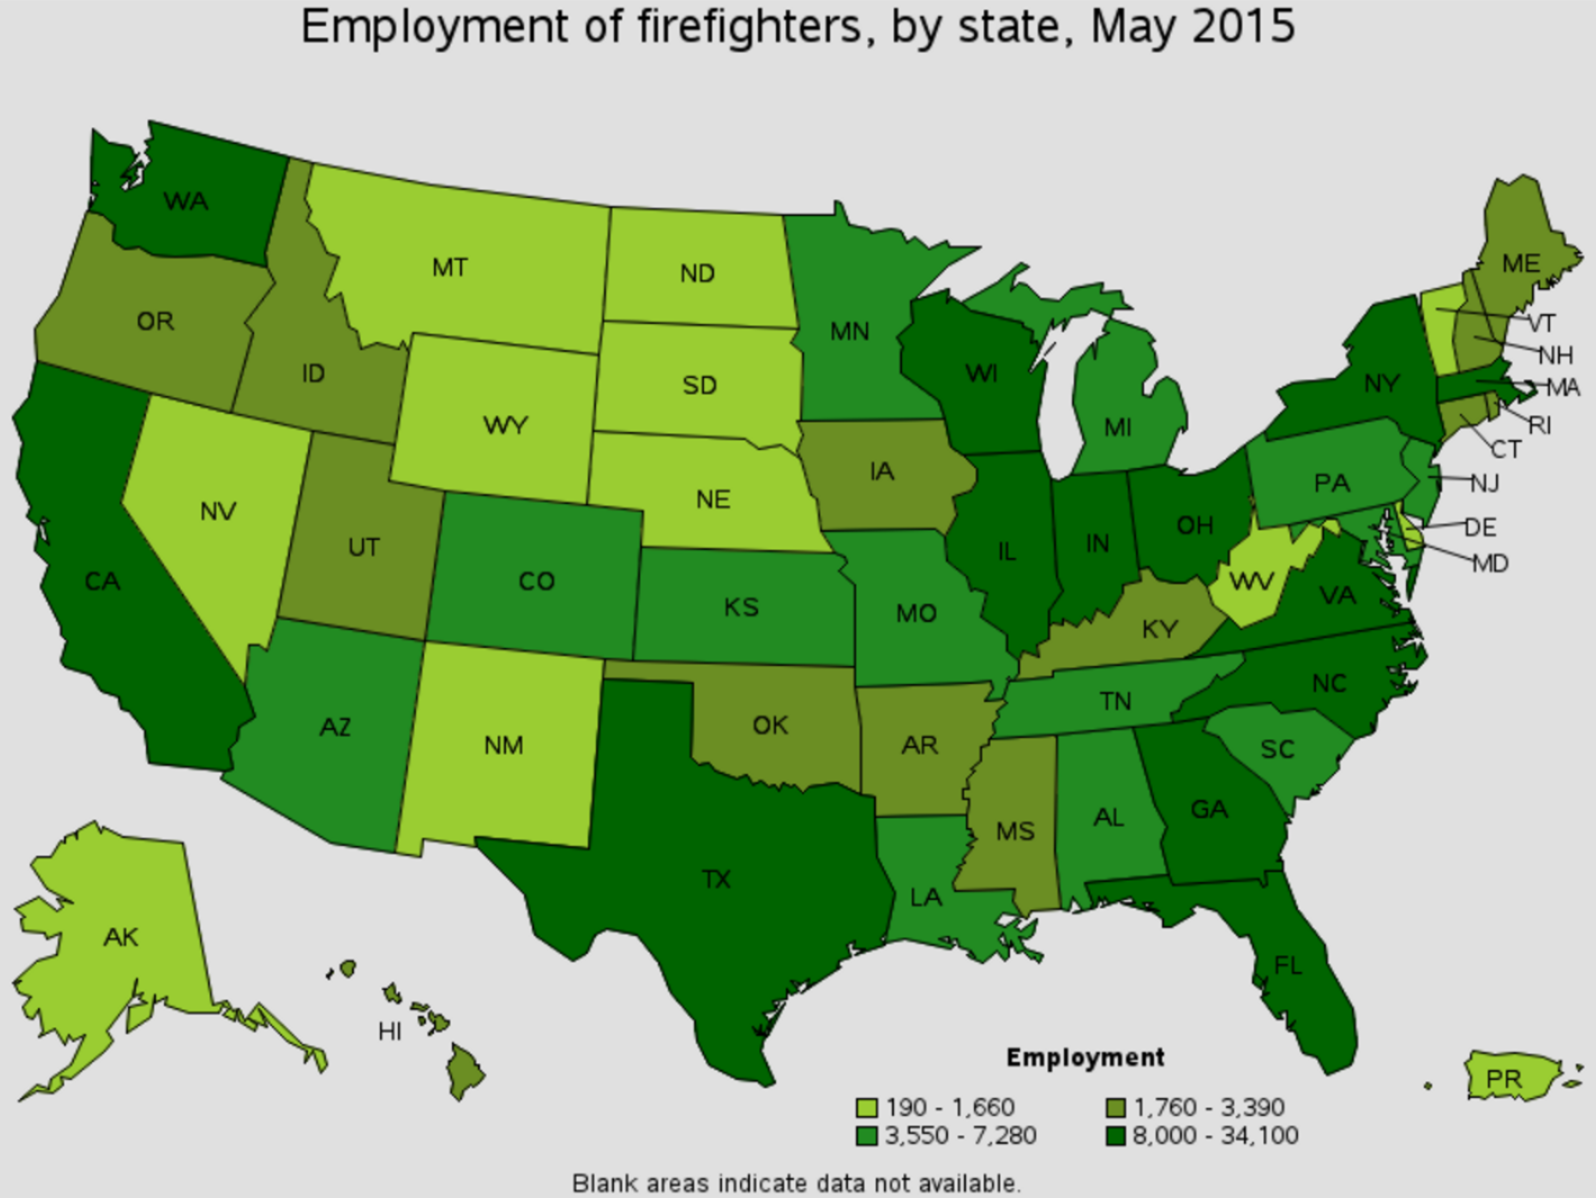 firefighter job outlook by state Madison South Dakota